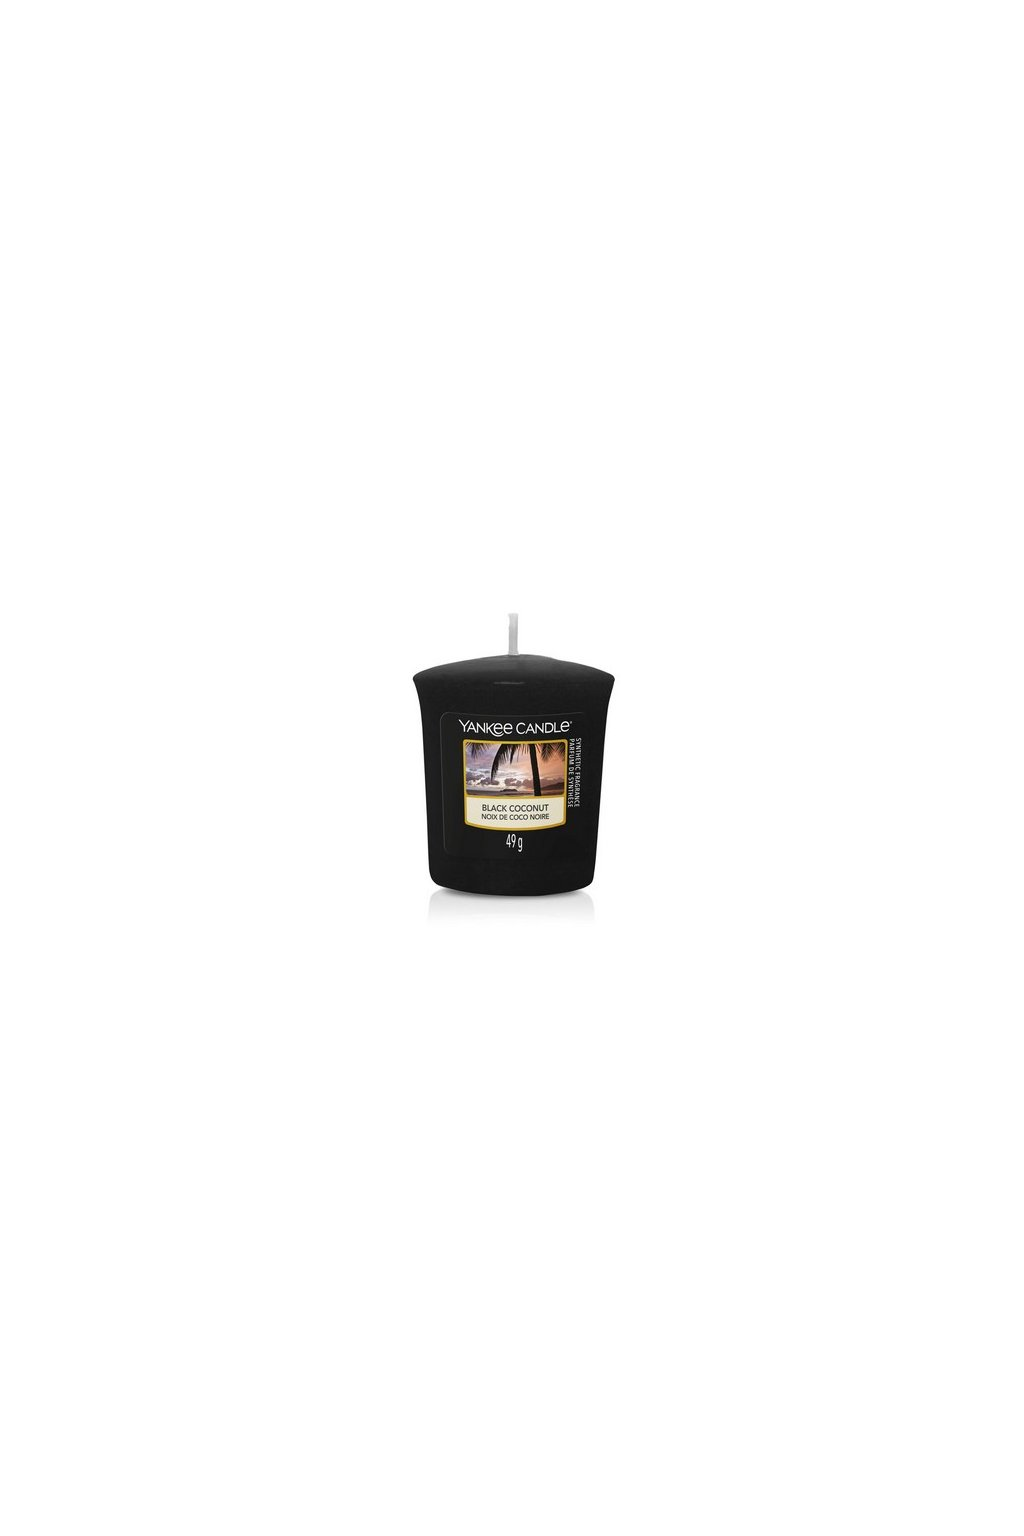 YANKEE CANDLE BLACK COCONUT 49g